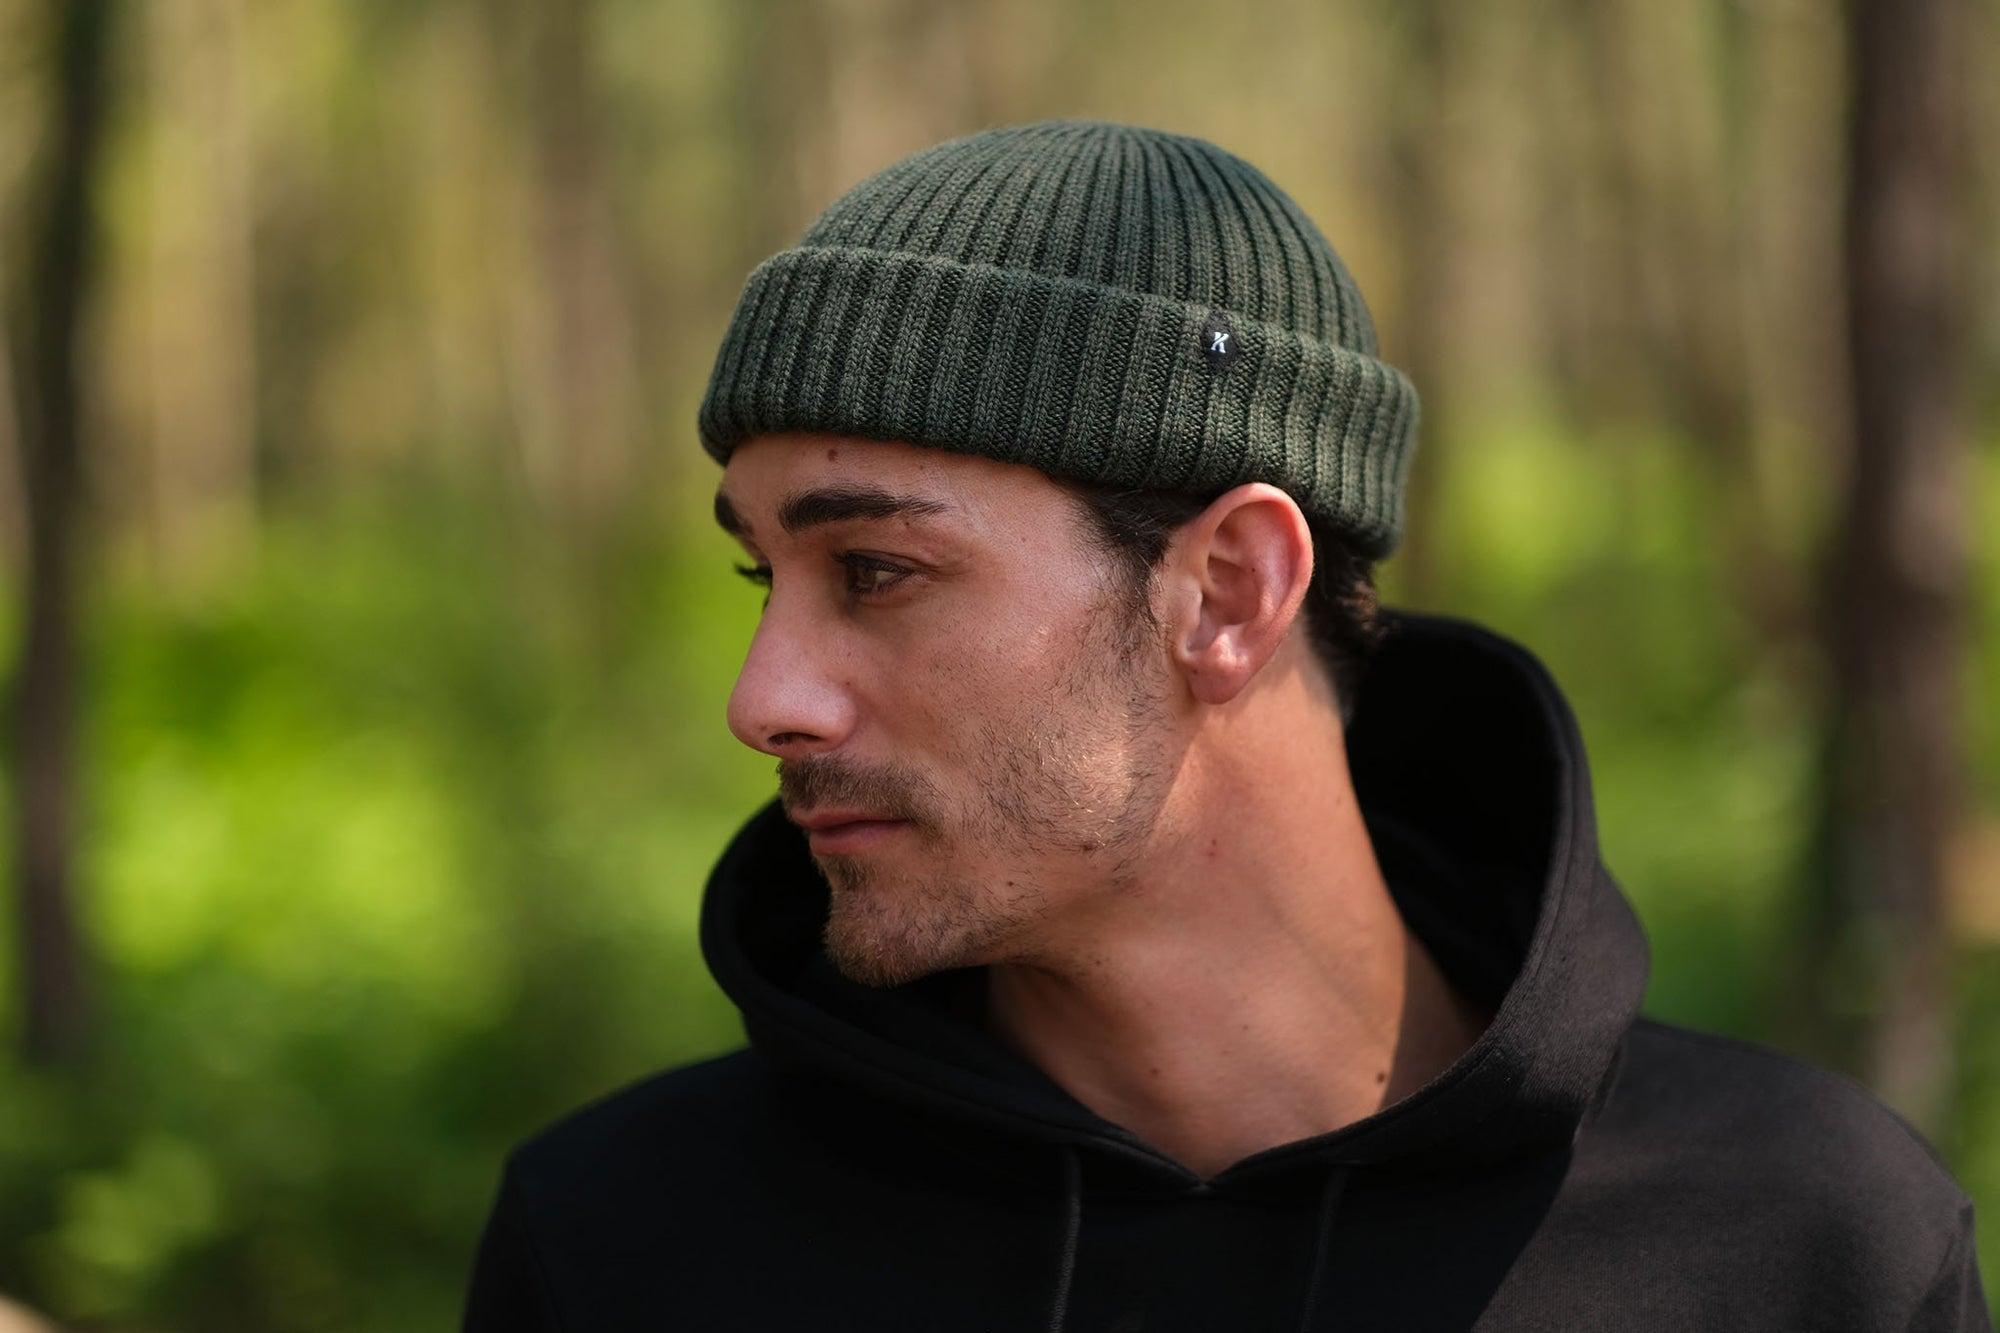 Kytone - Kytone Ben Green Beanie - Caps - Salt Flats Clothing